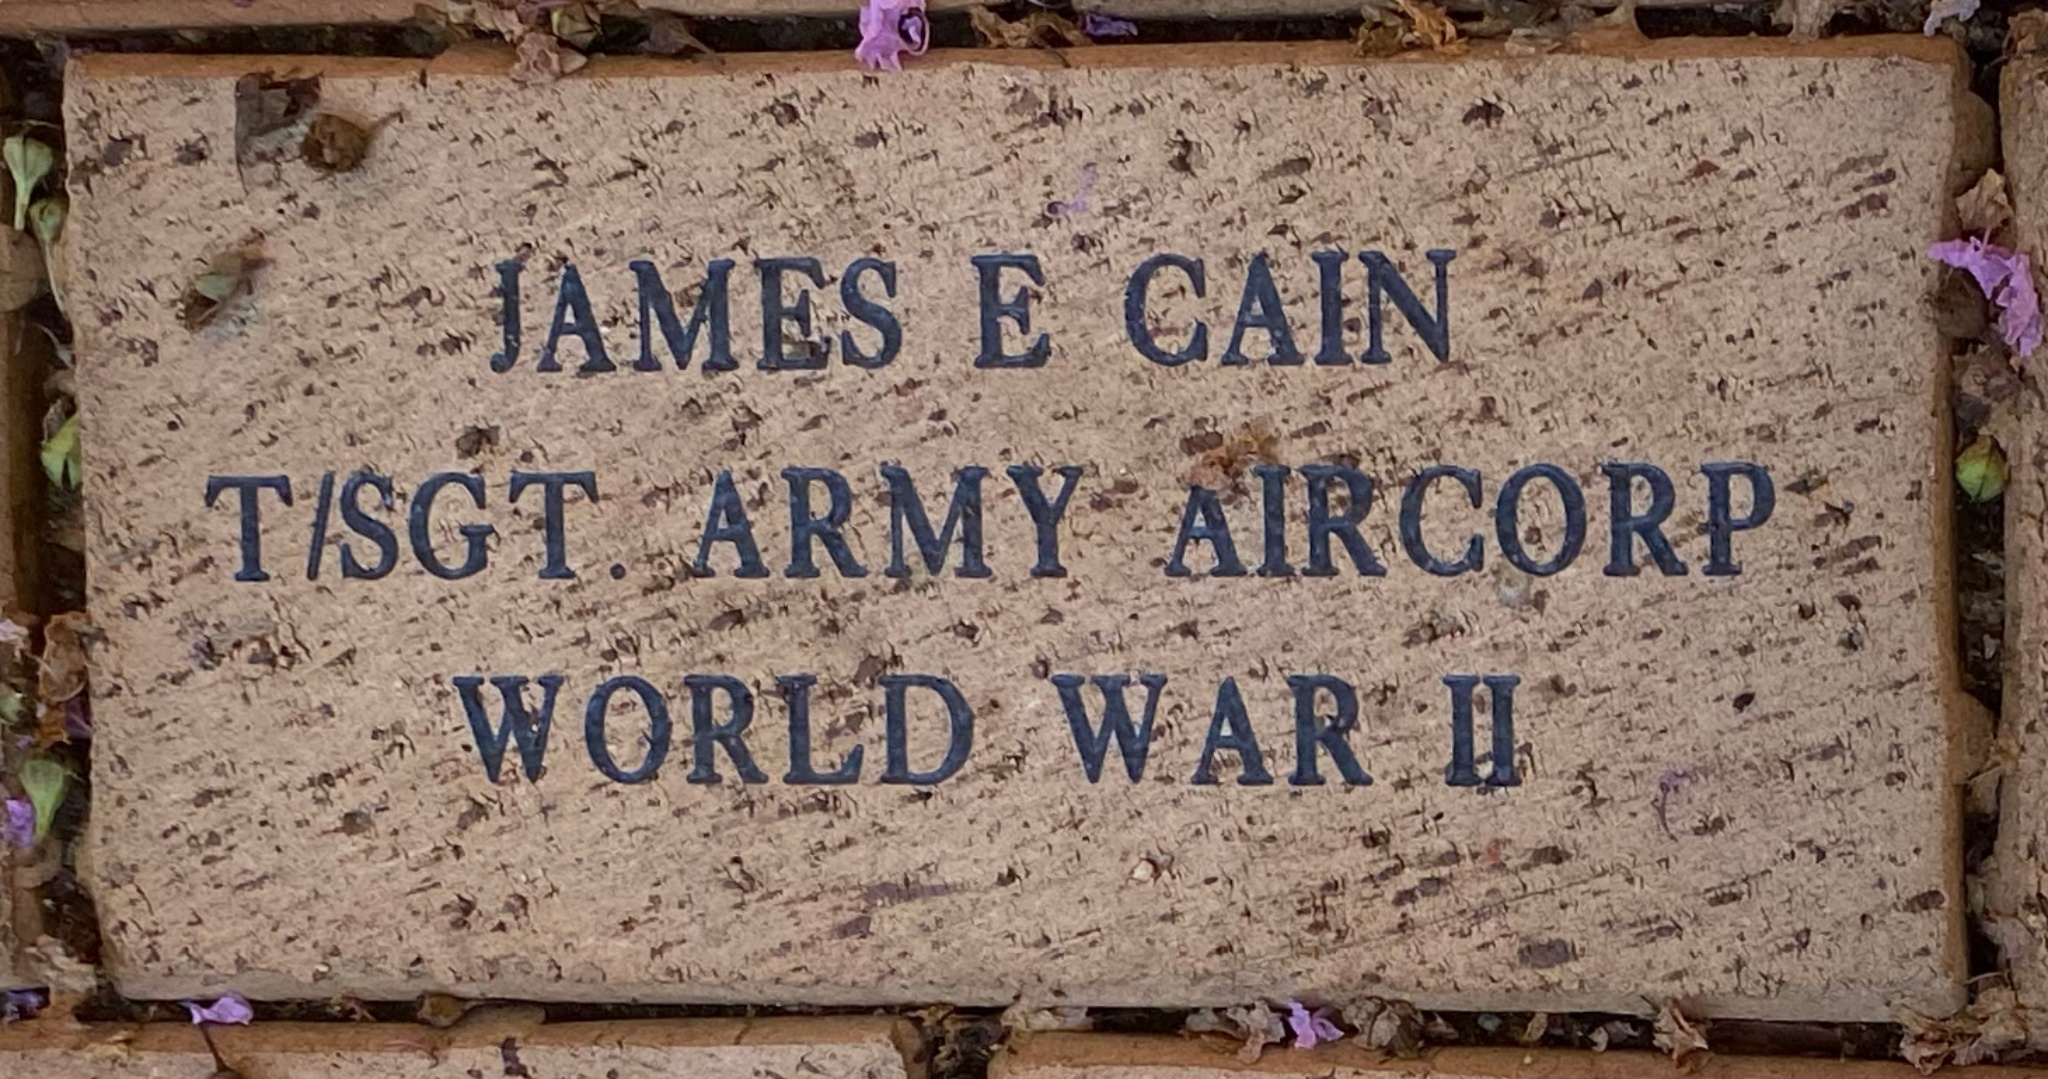 JAMES E CAIN T/SGT. ARMY AIRCORP WORLD WAR II